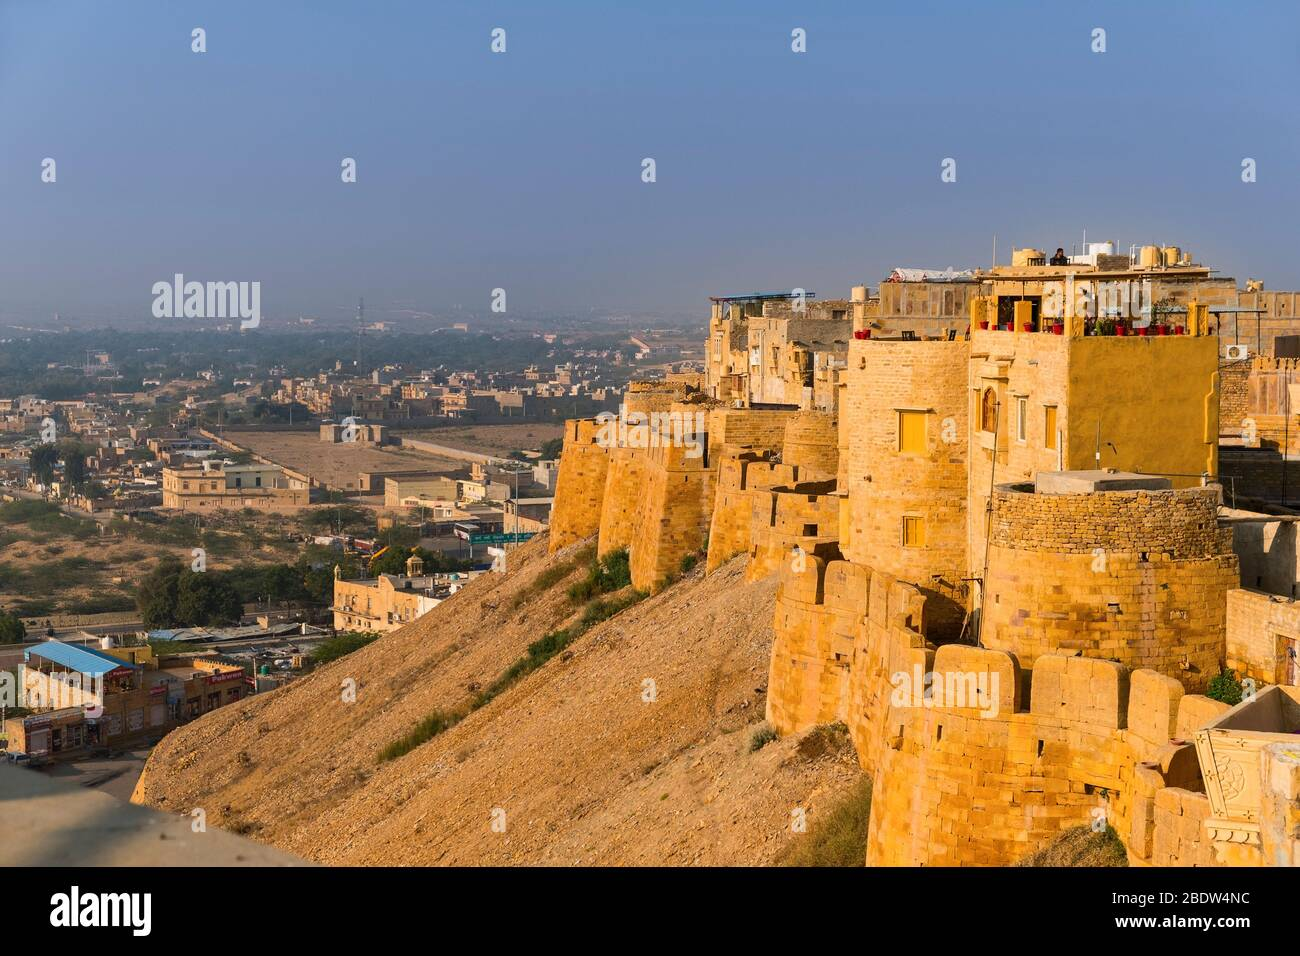 City view from Jaisalmer Fort Rajasthan India Stock Photo